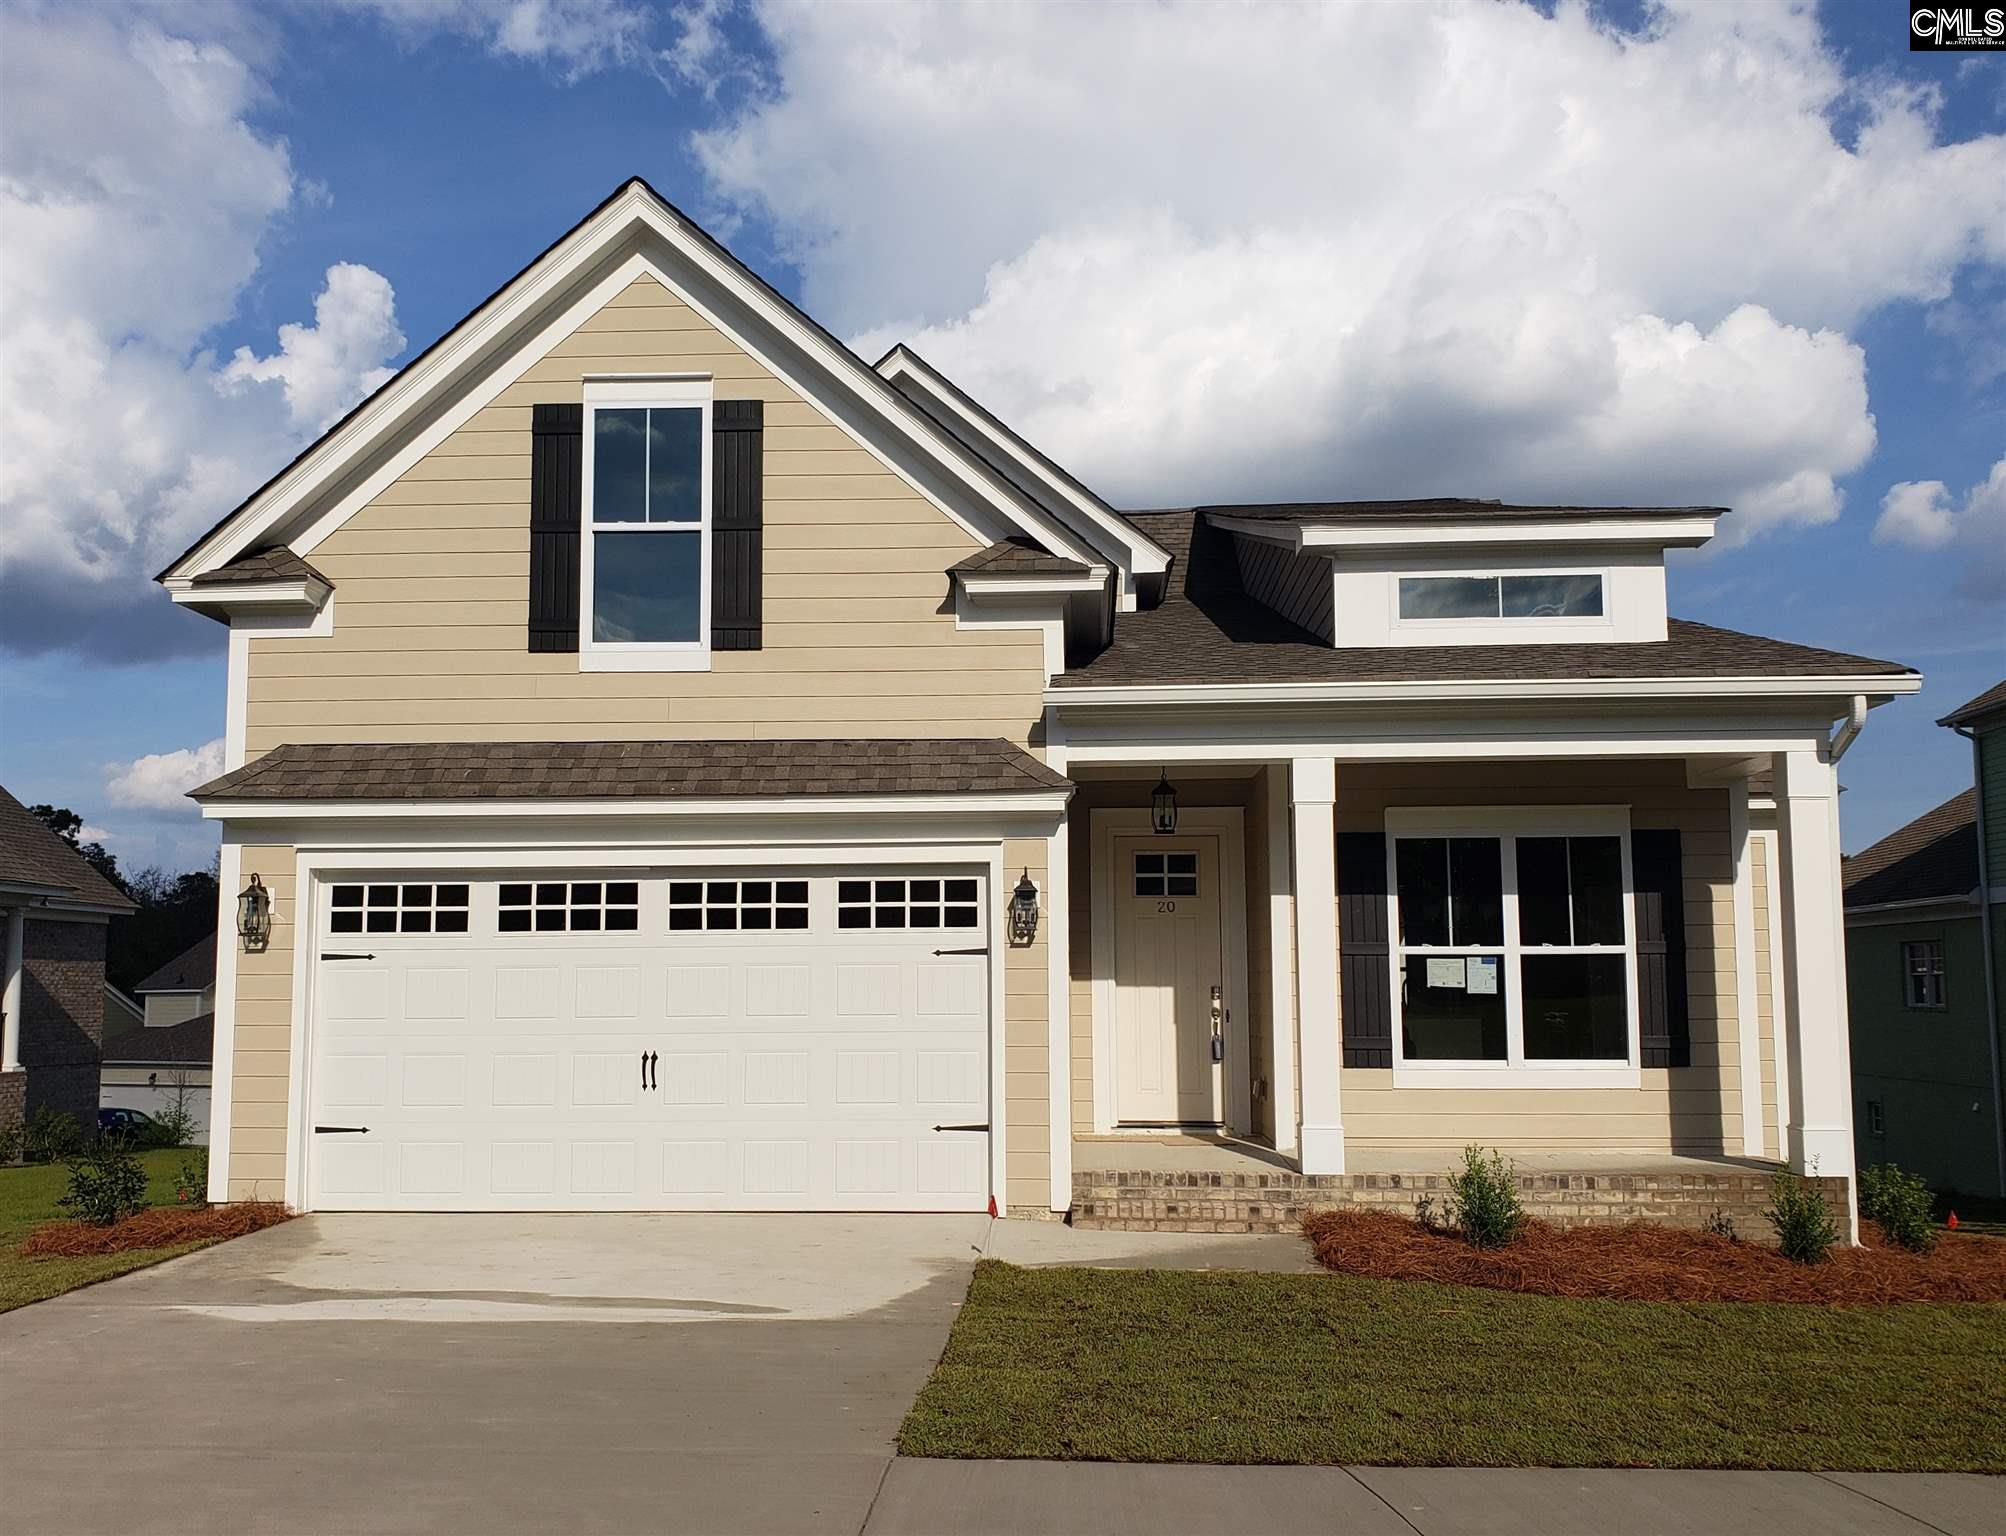 20 Gillion Elgin, SC 29045